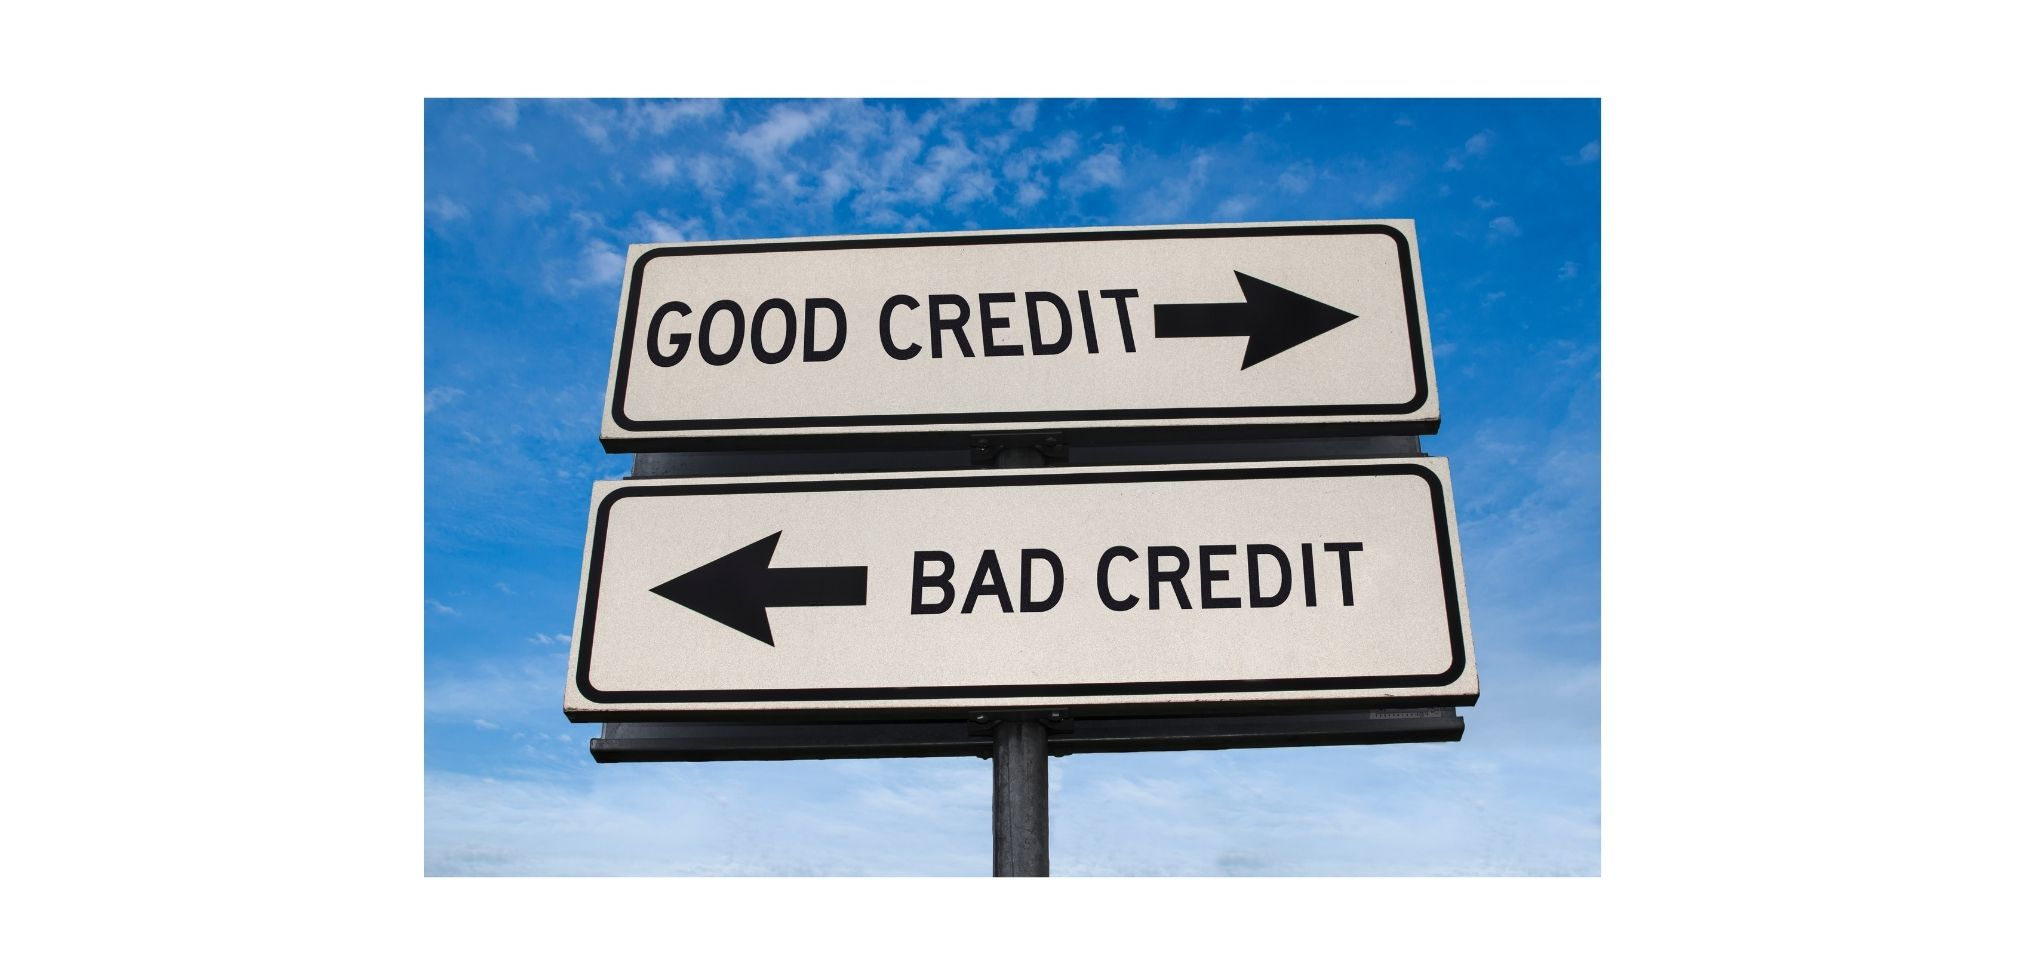 The Ultimate Guide To Improving Your Credit Score